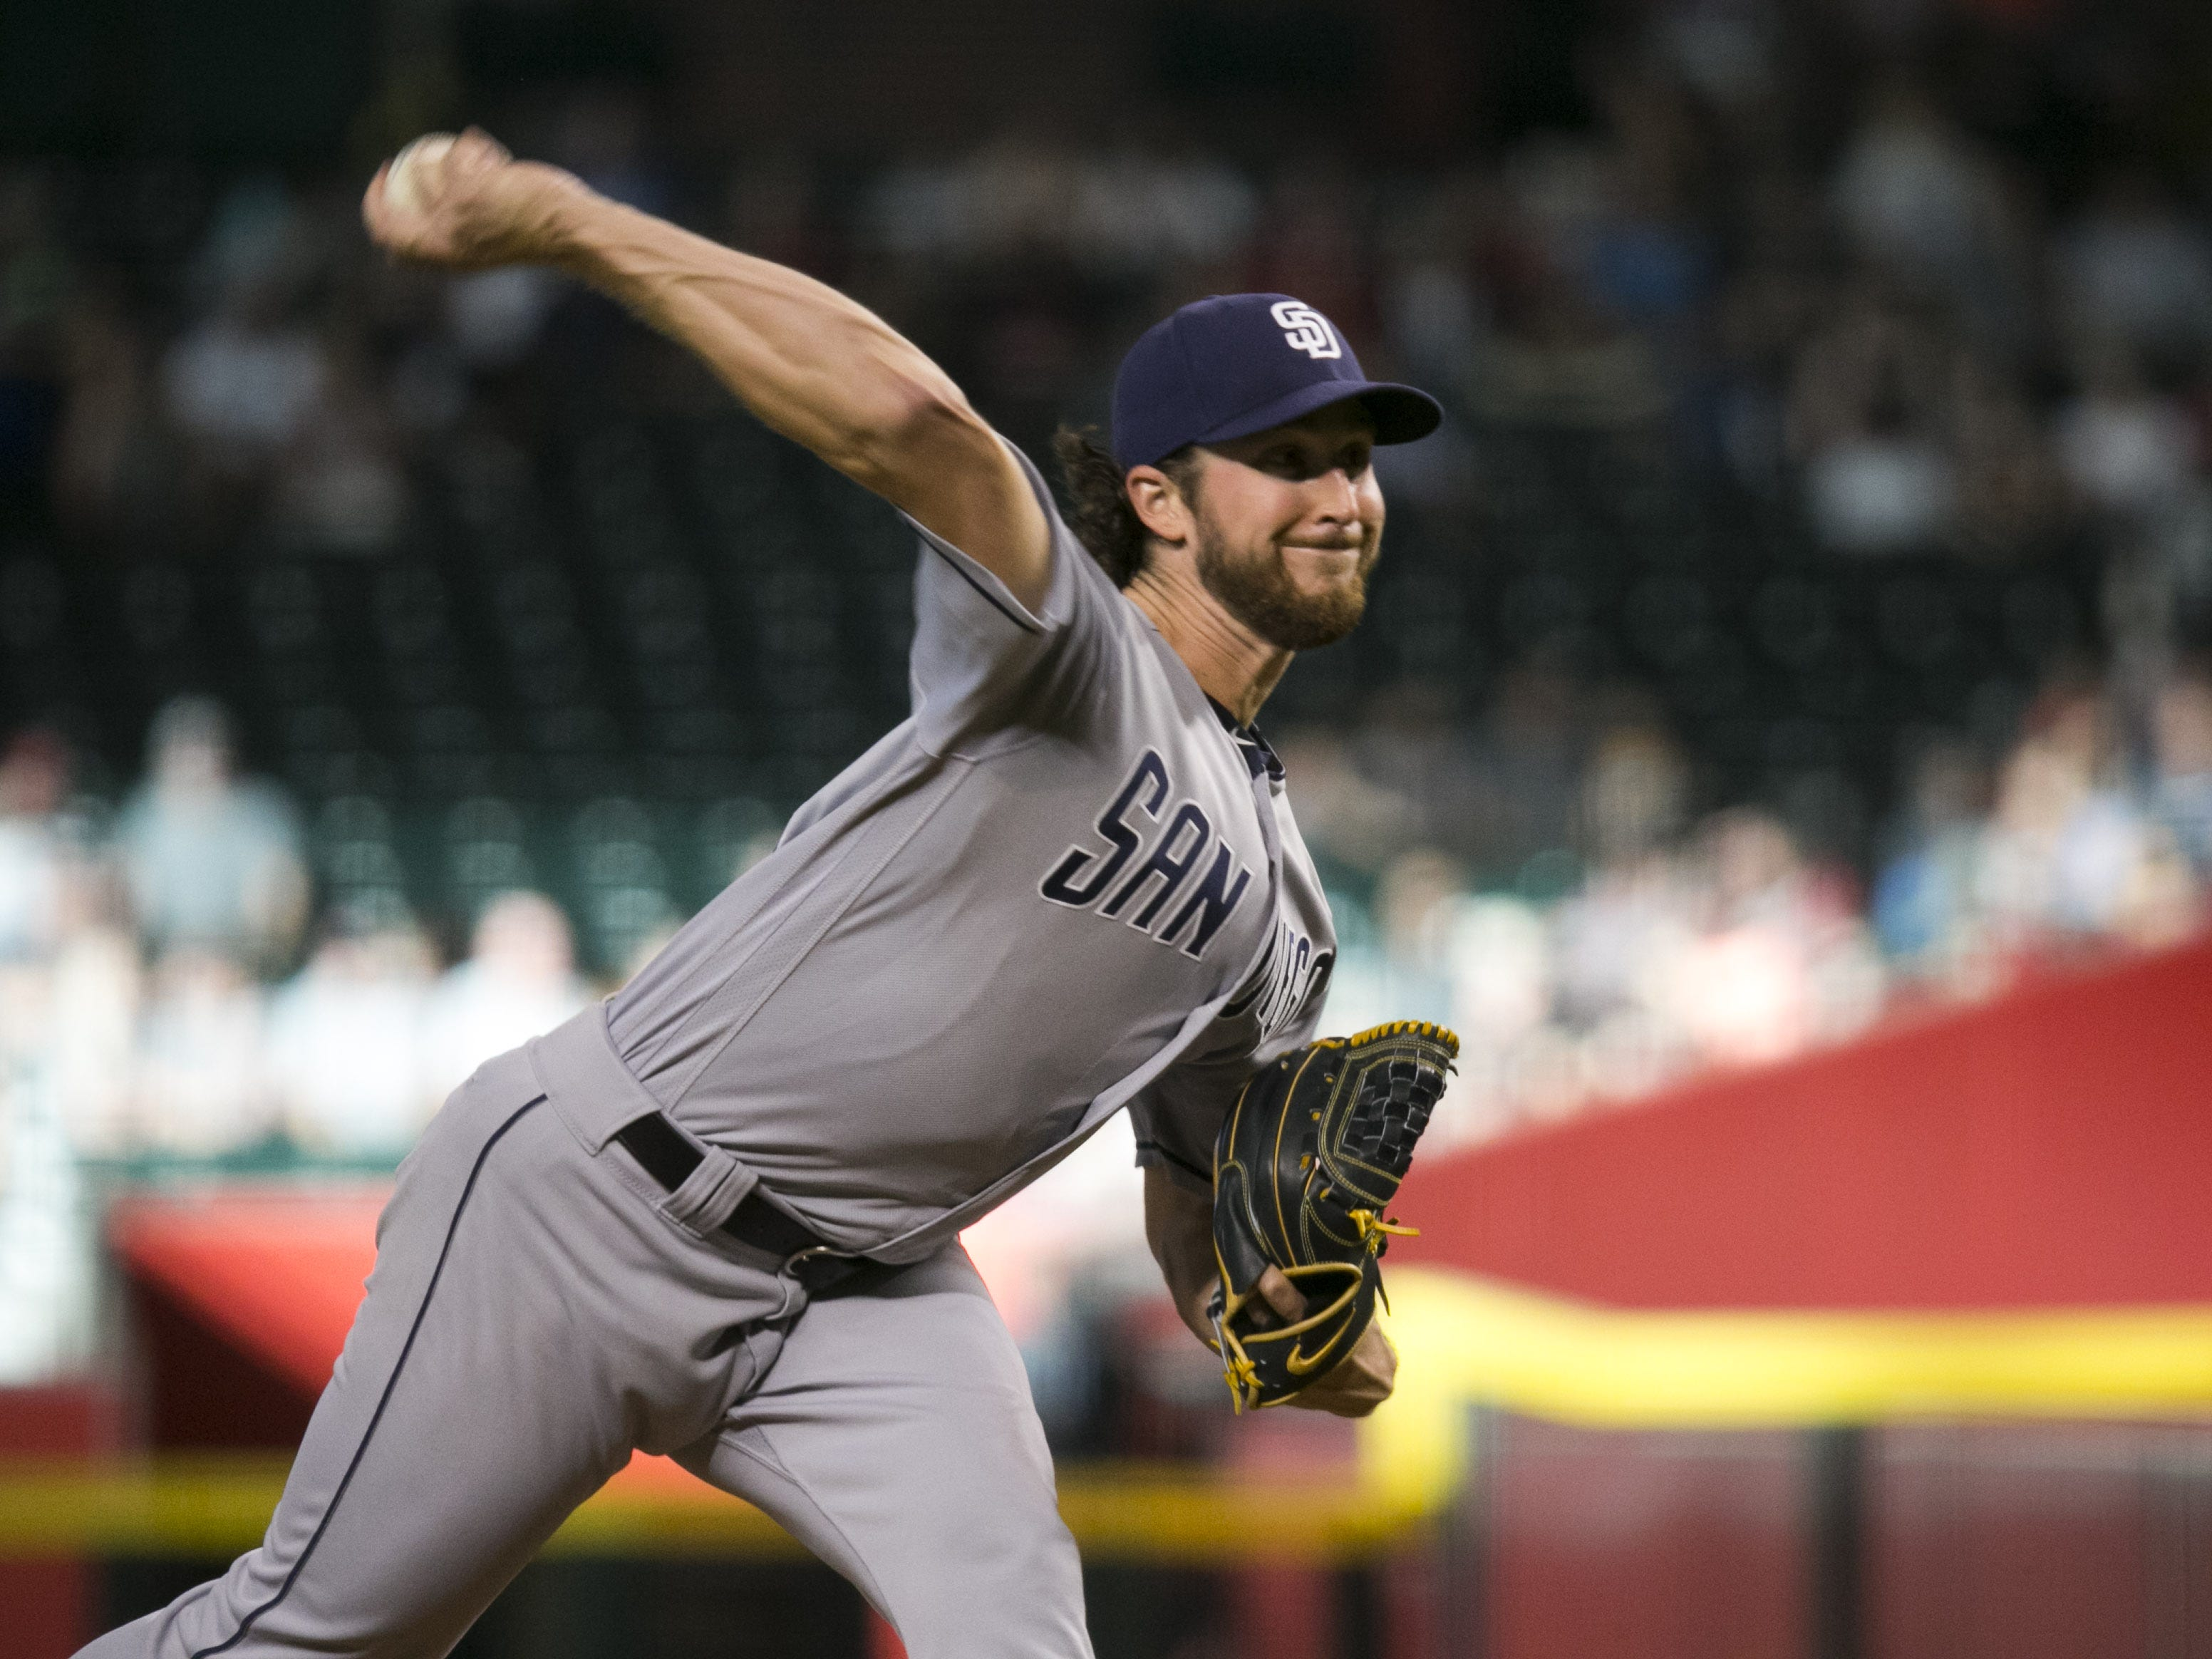 Padres pitcher Bryan Mitchell pitches against the Diamondbacks during the first inning of the major league baseball game at Chase Field in Phoenix on Monday, September 3, 2018.